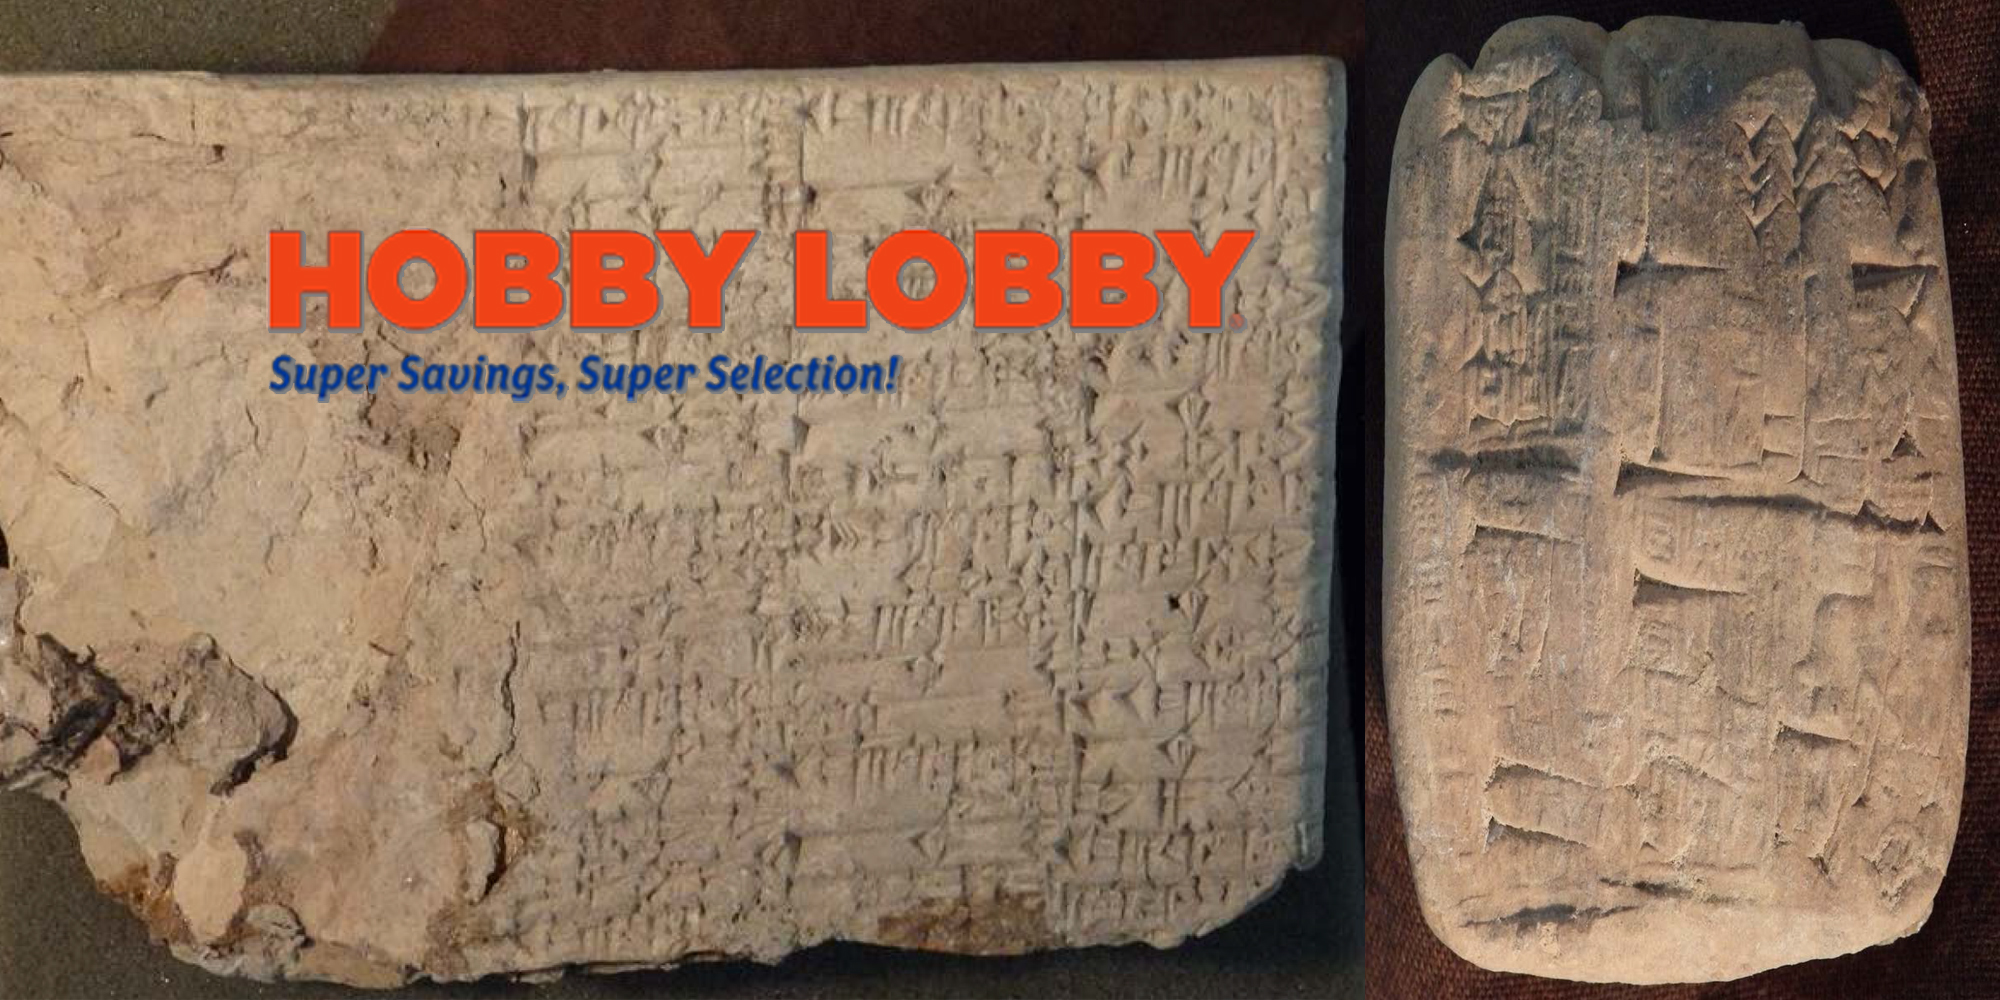 Hobby Lobby Agrees To Turn Over Thousands Of Ancient Iraqi Artifacts That Were Smuggled Into U.S.